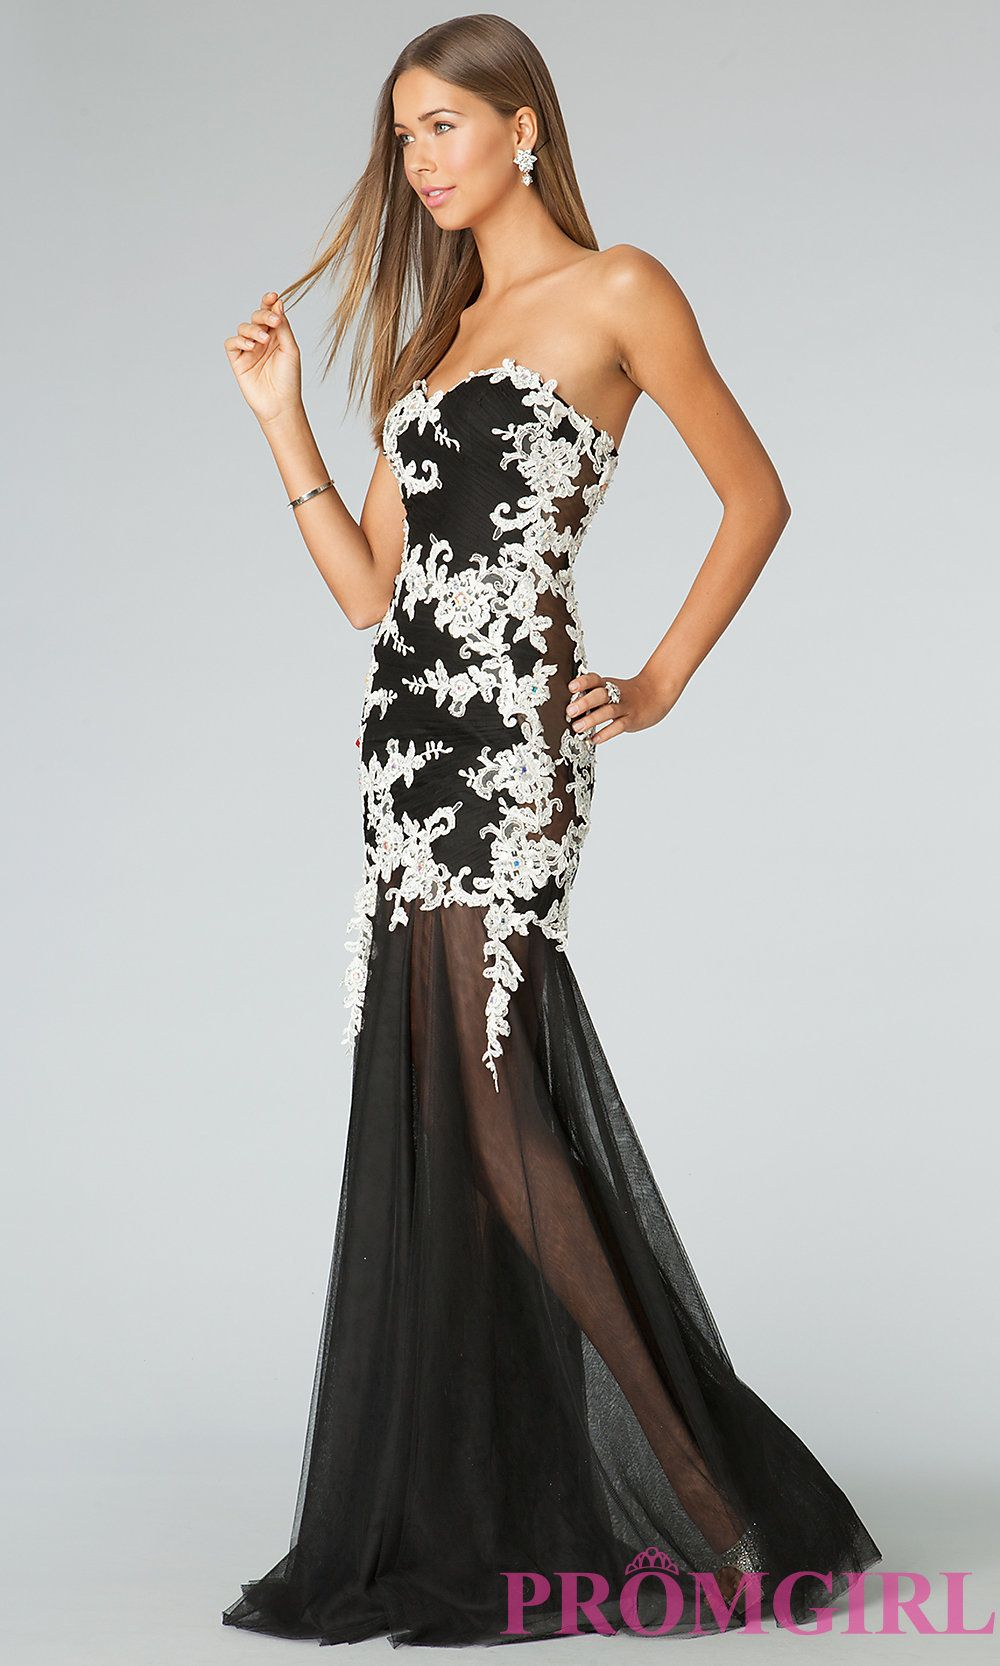 Long black and white lace gown from jvn by jovani prom white lace